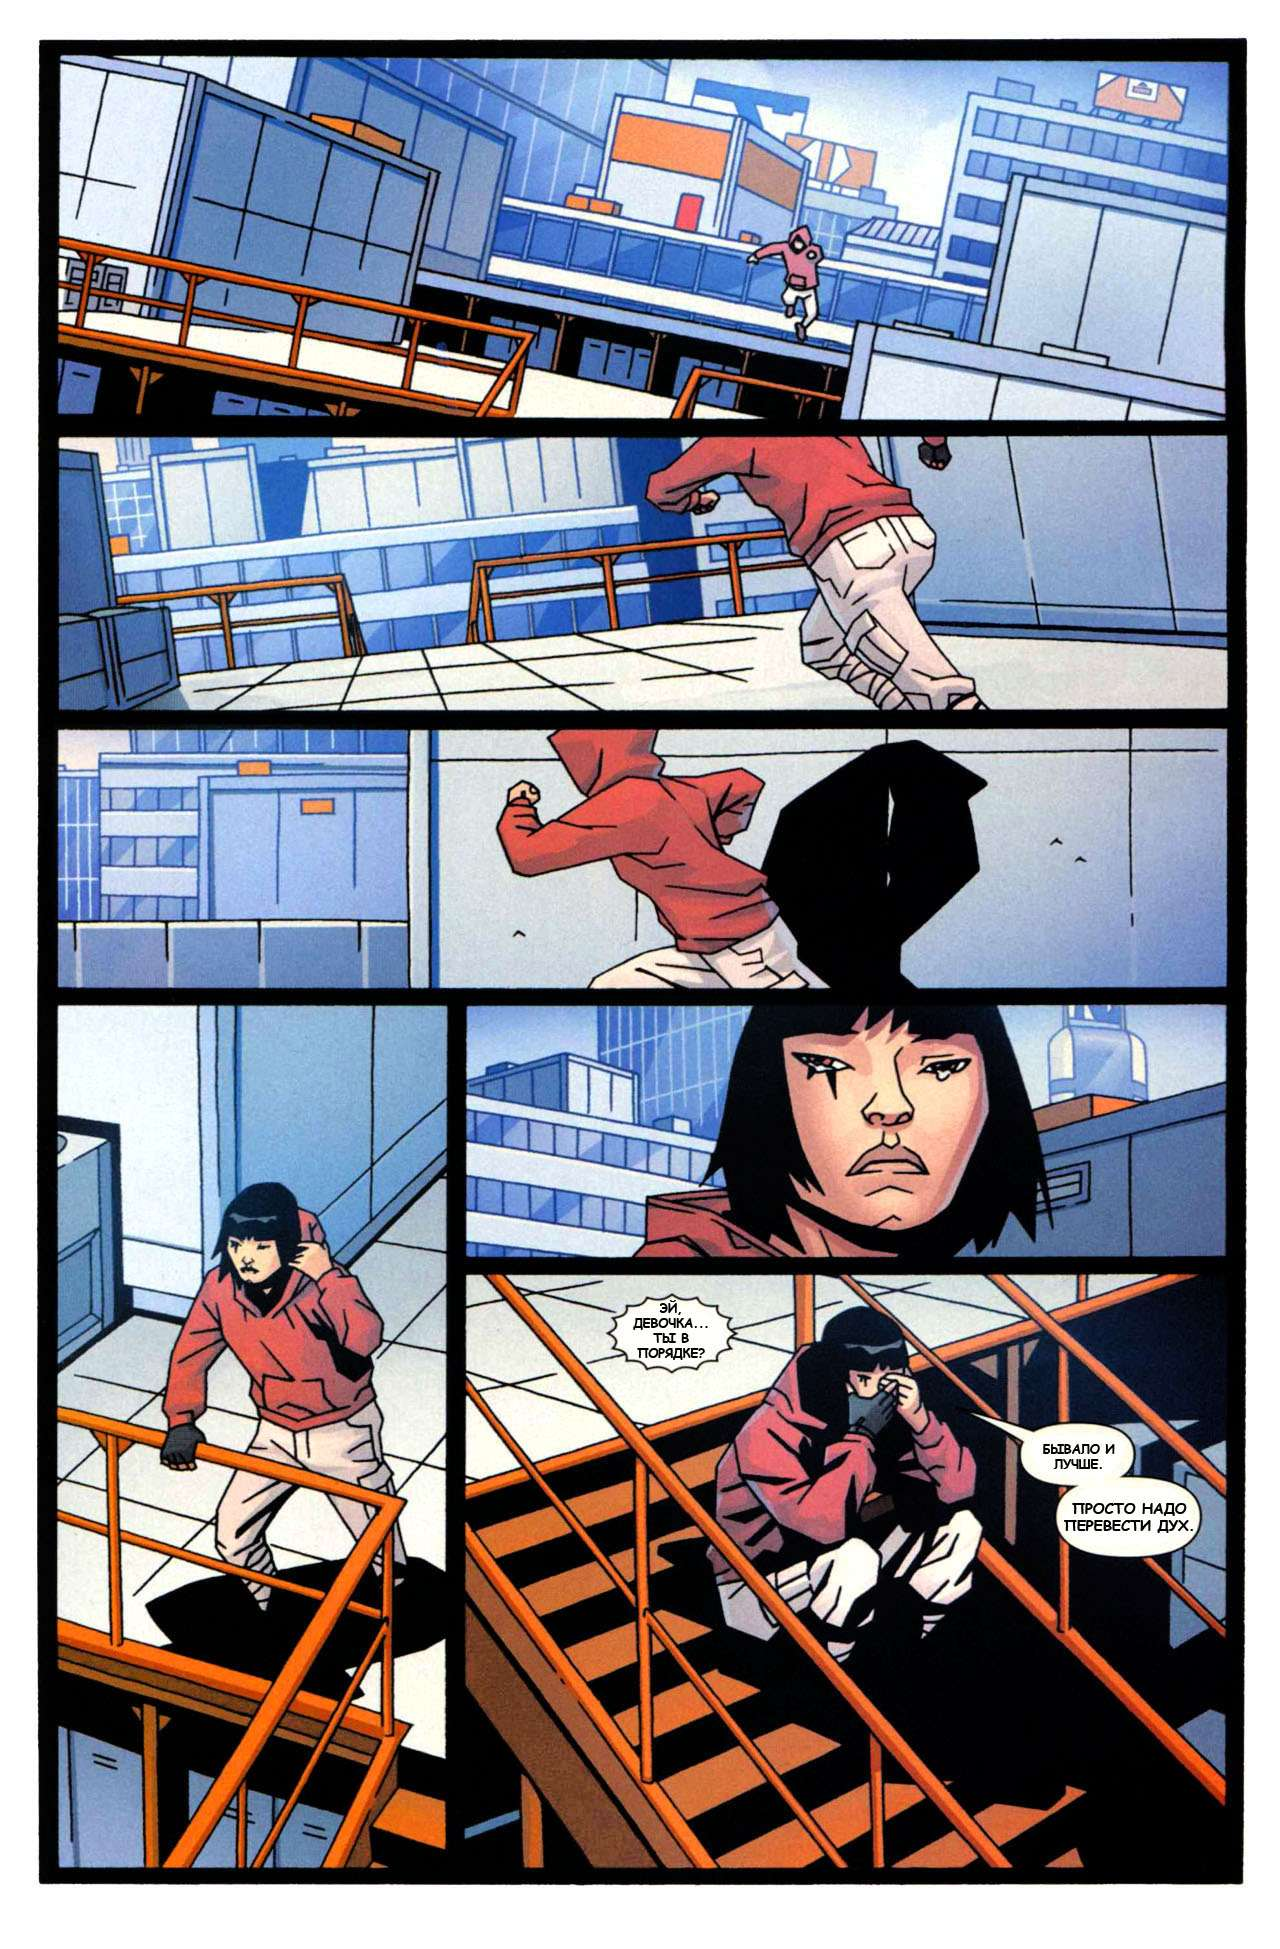 mirrorsedge03-014